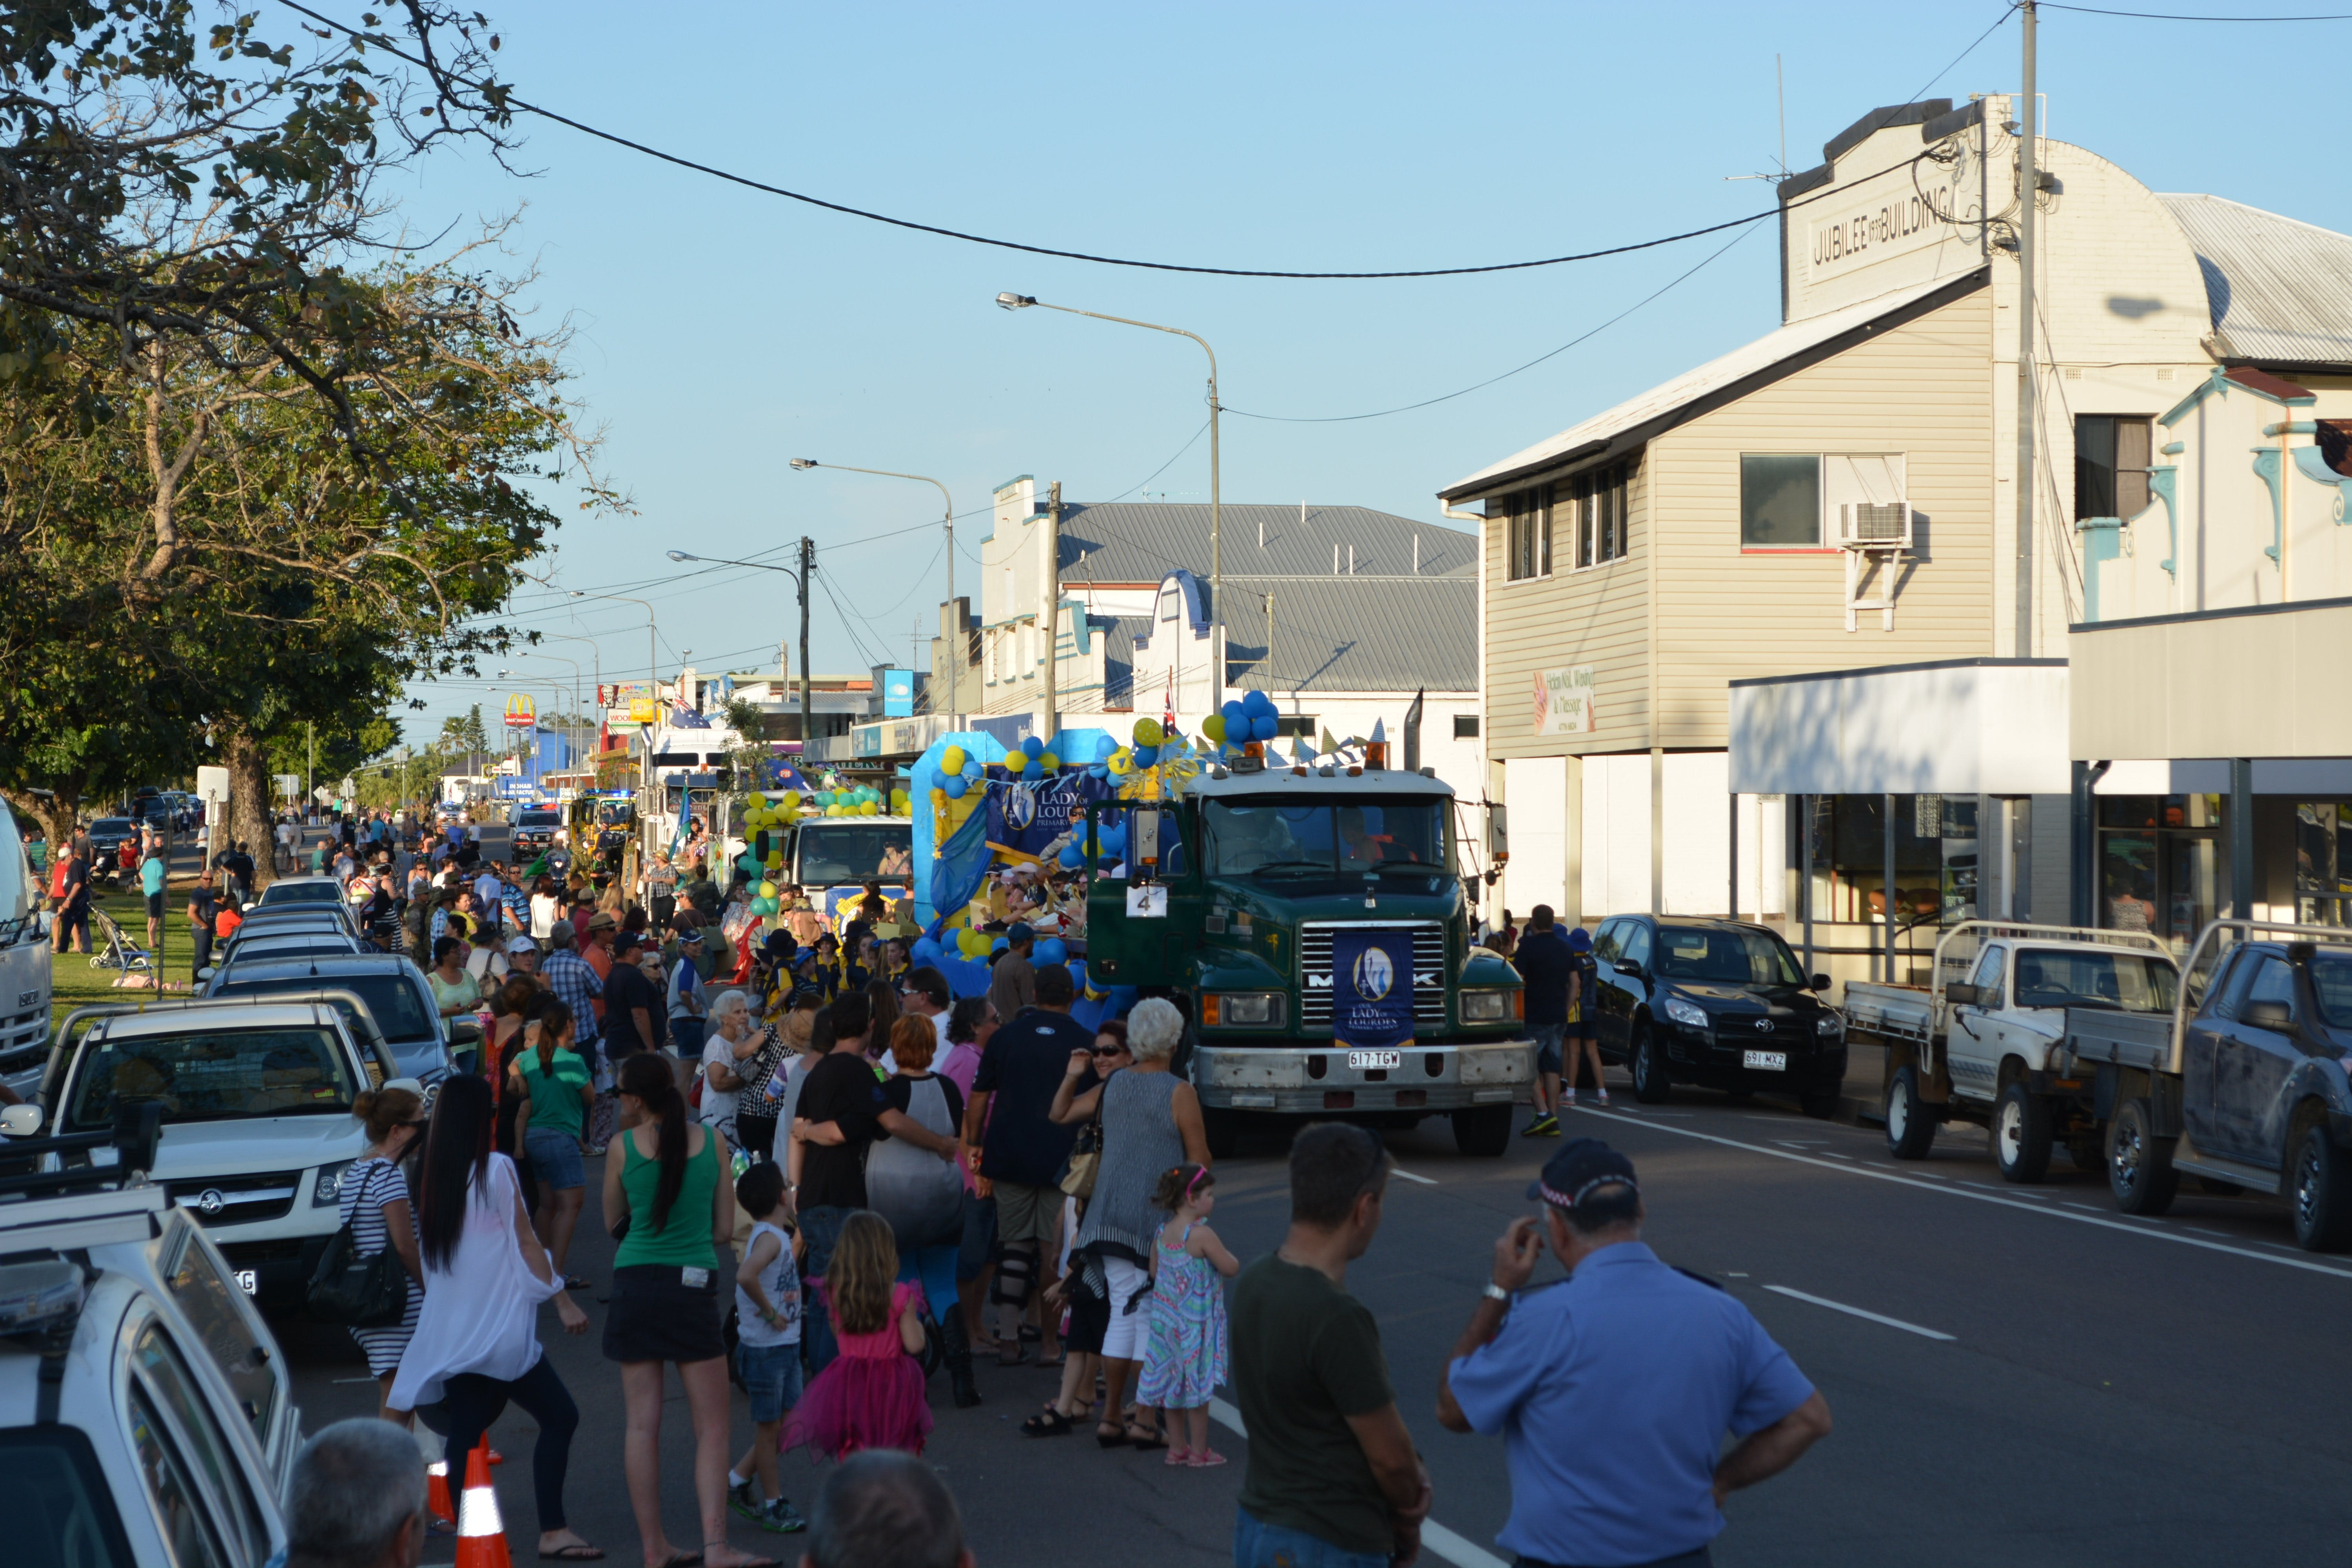 Ingham Maraka Festival - Tweed Heads Accommodation